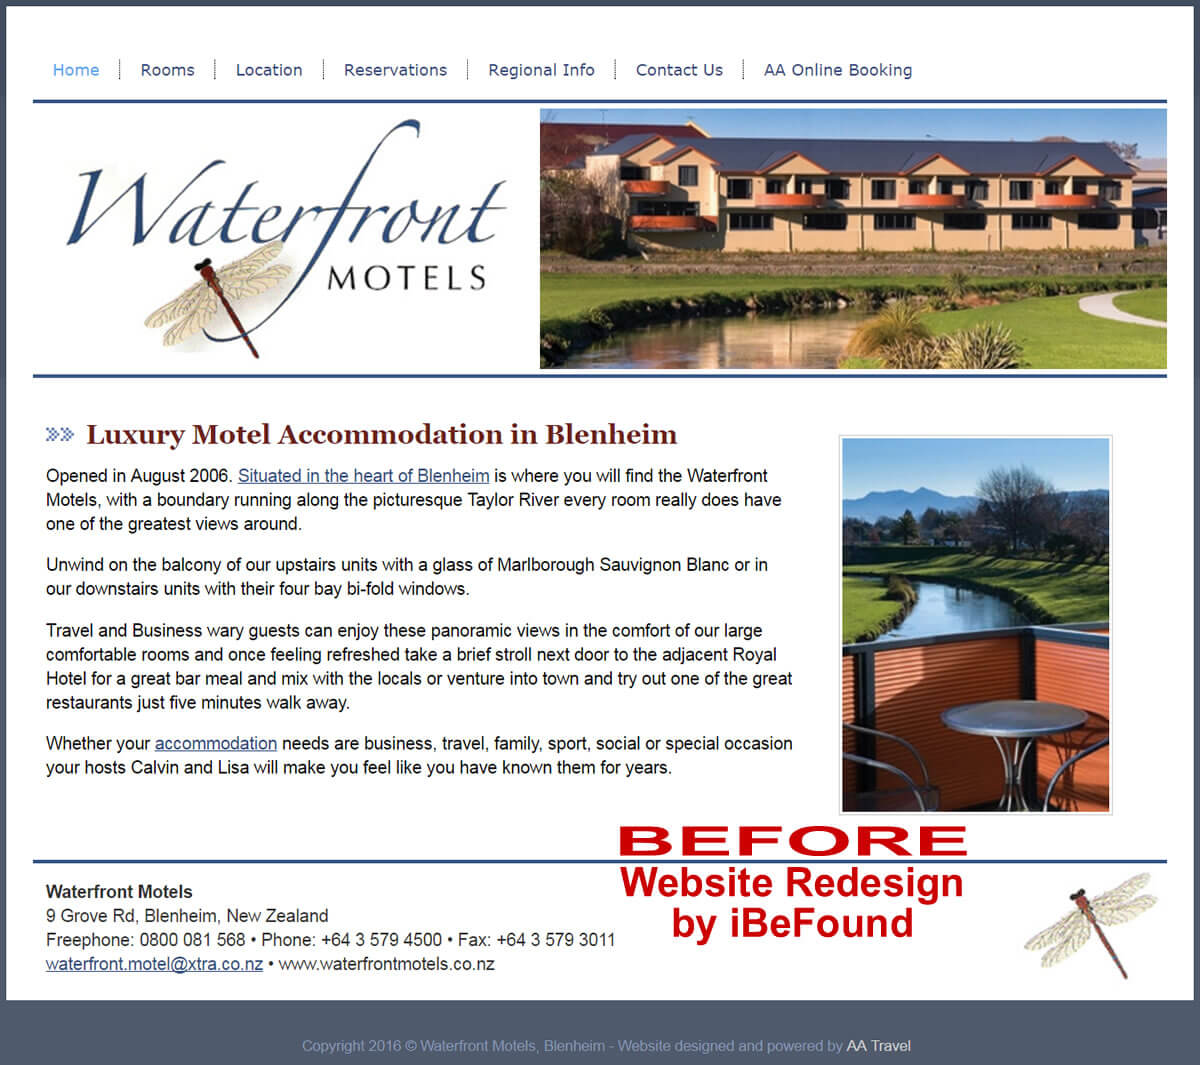 Homepage Of Waterfront Motels Before Website Redesign By iBeFound